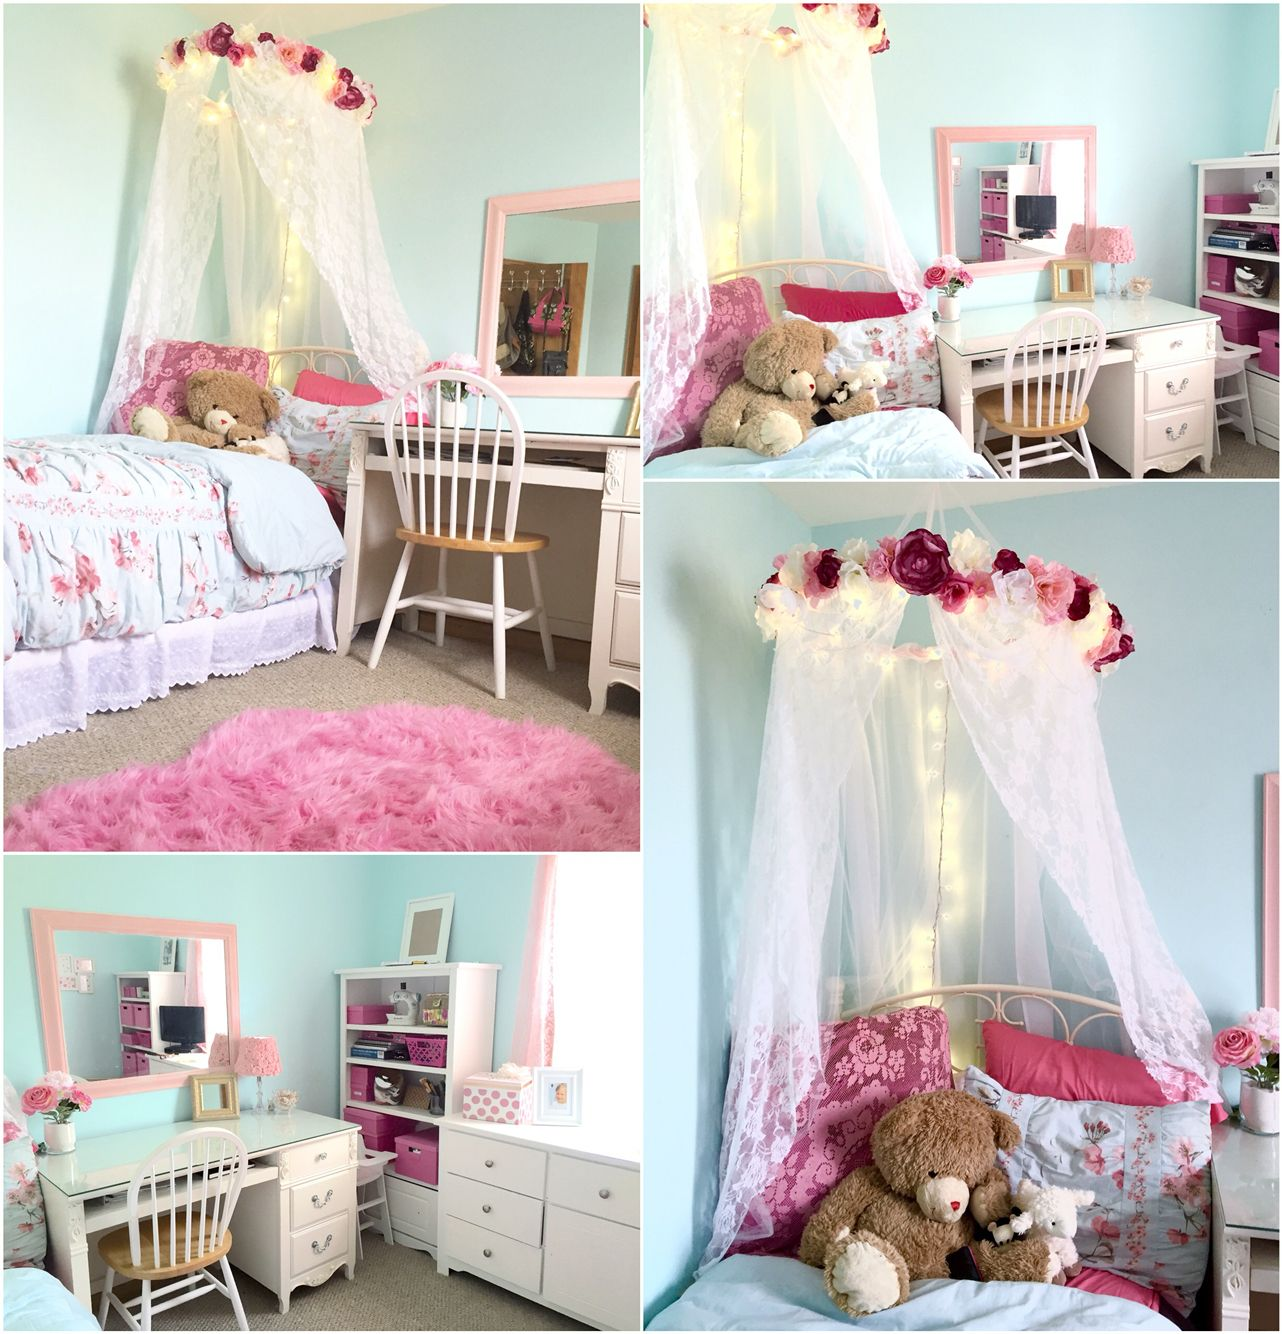 Pink And Blue Girl S Room With Canopy And Tree Mural Tiny Shabby